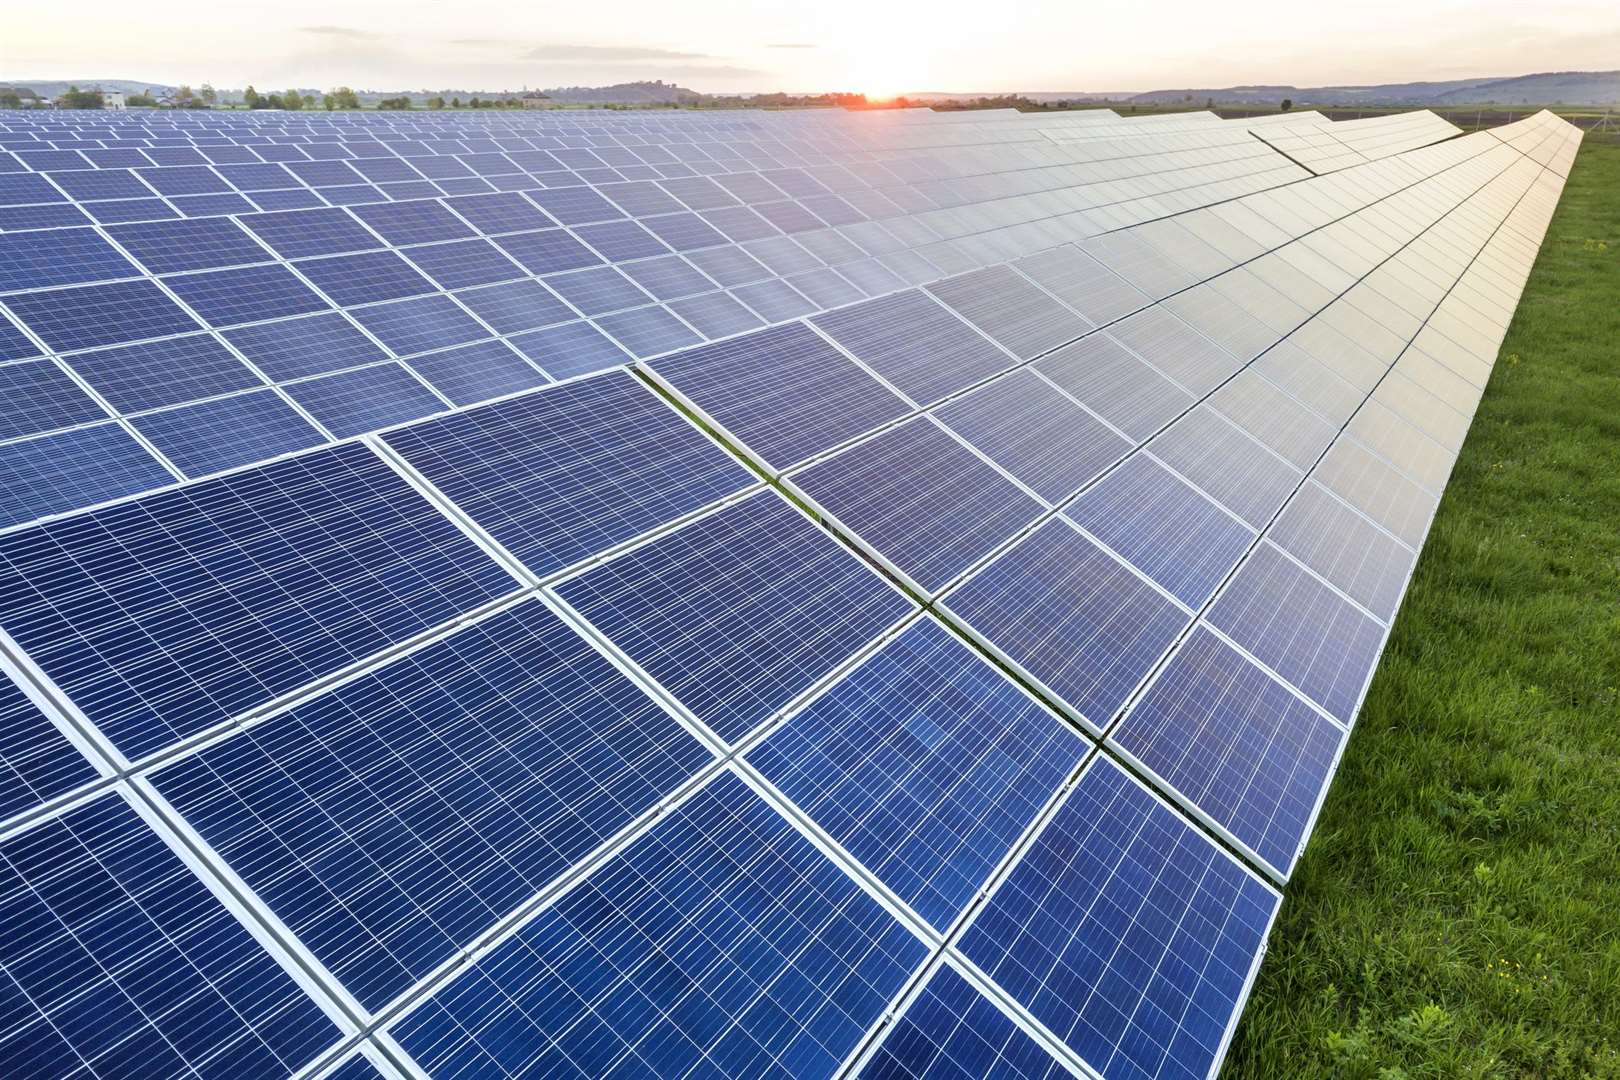 Blue solar photo voltaic panels system producing renewable clean energy on rural landscape and setting sun background. (Blue solar photo voltaic panels system producing renewable clean energy on rural landscape and setting sun background., ASCII, 119 (43101796)